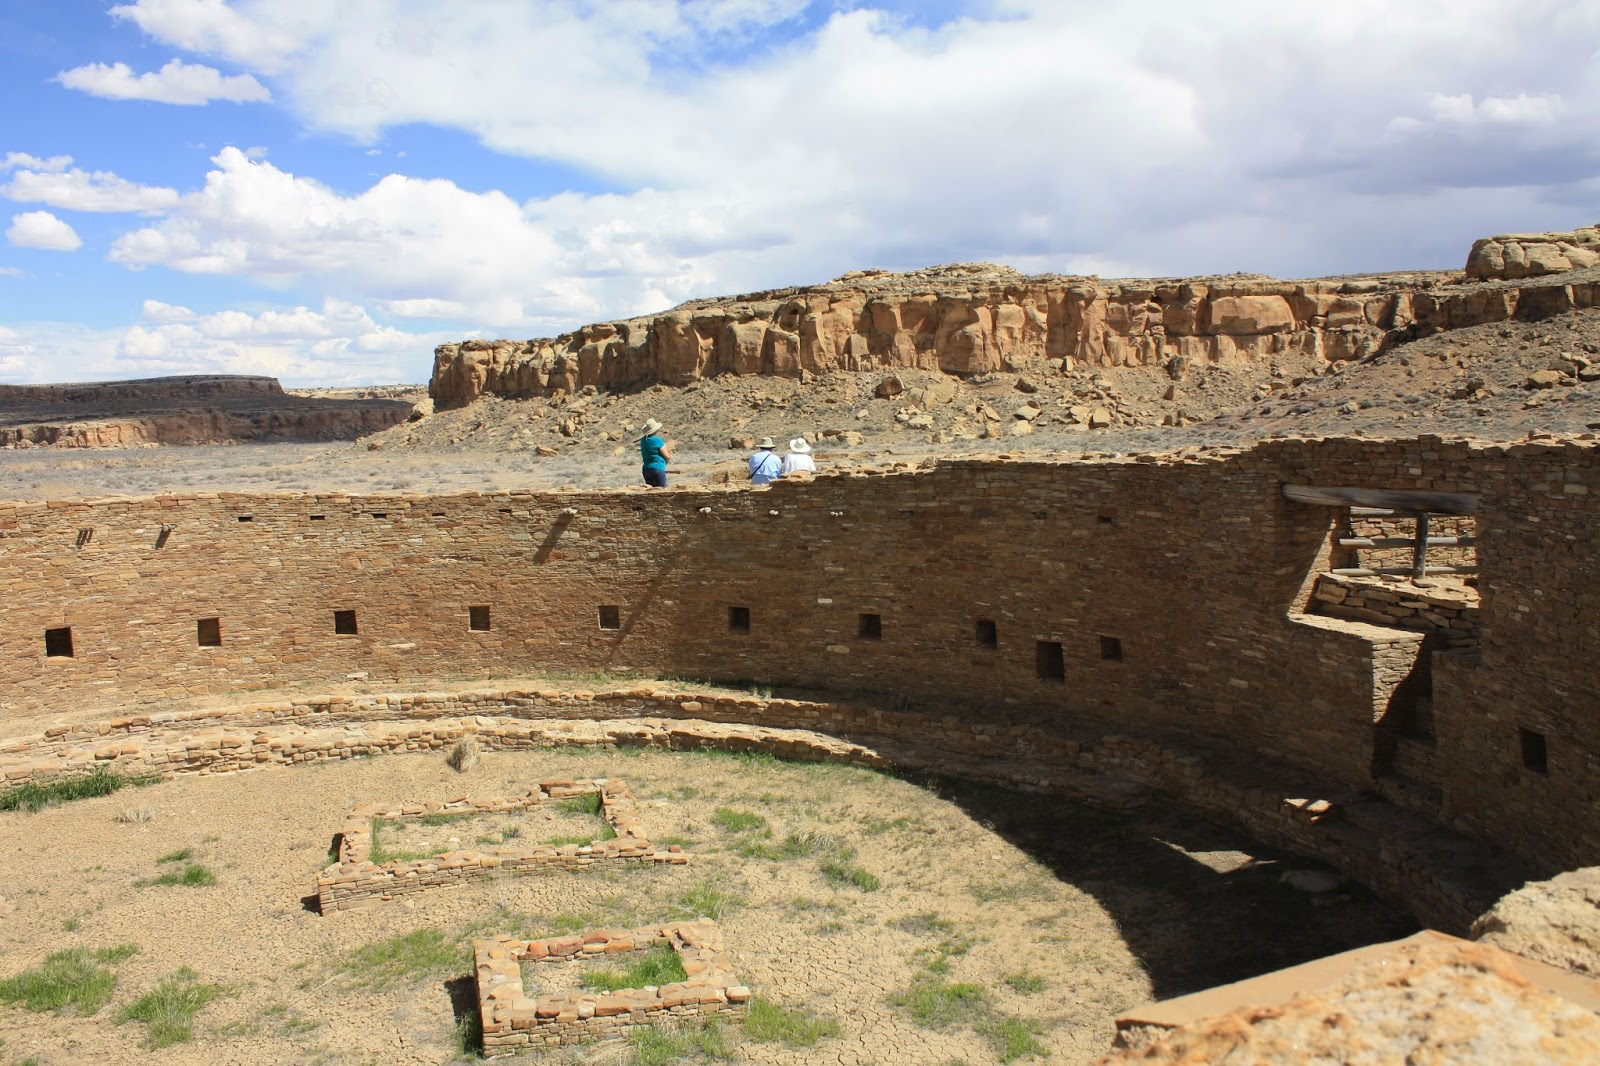 Remains of a Kiva at Pueblo Bonito